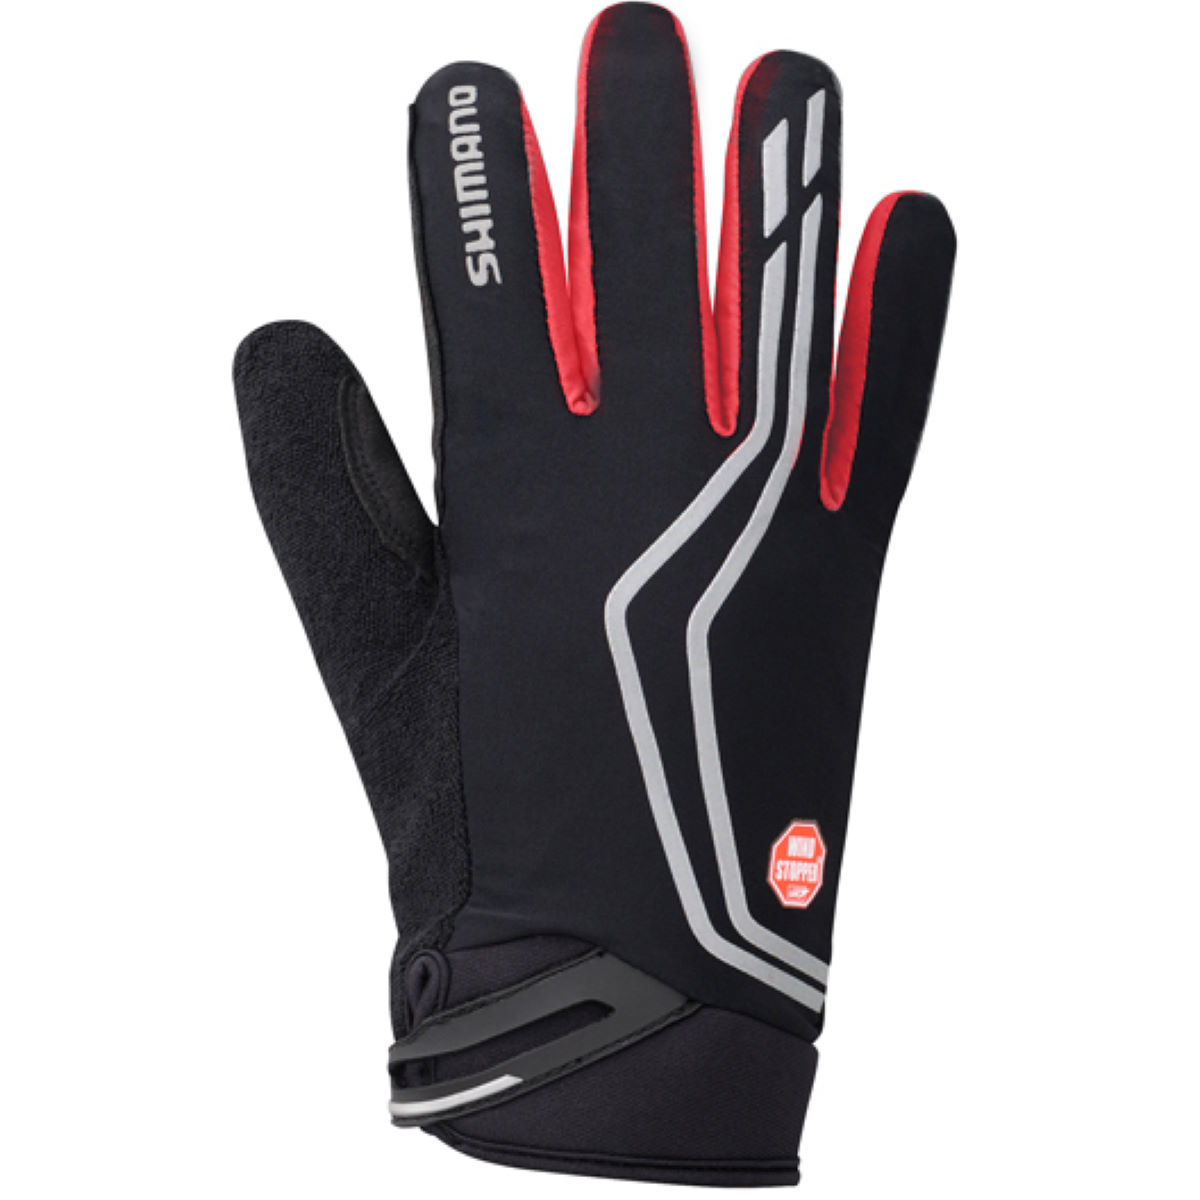 Gants Shimano Windstopper (isolés) - Small Rouge Gants d'hiver